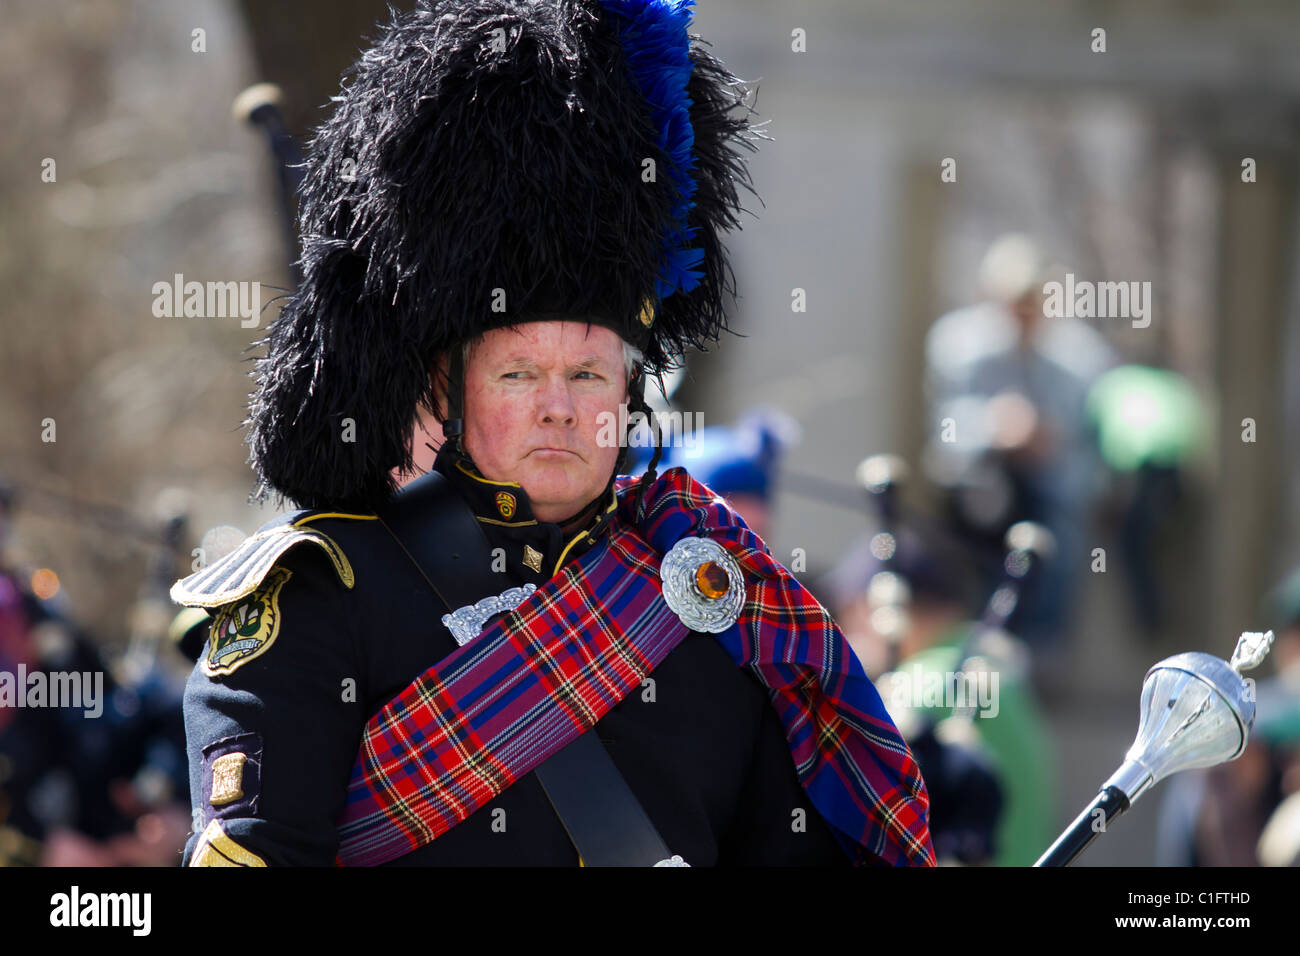 A grim looking Drum Major leads the Suffolk County Police Department's Emerald Society Pipe and Drum Band - Stock Image